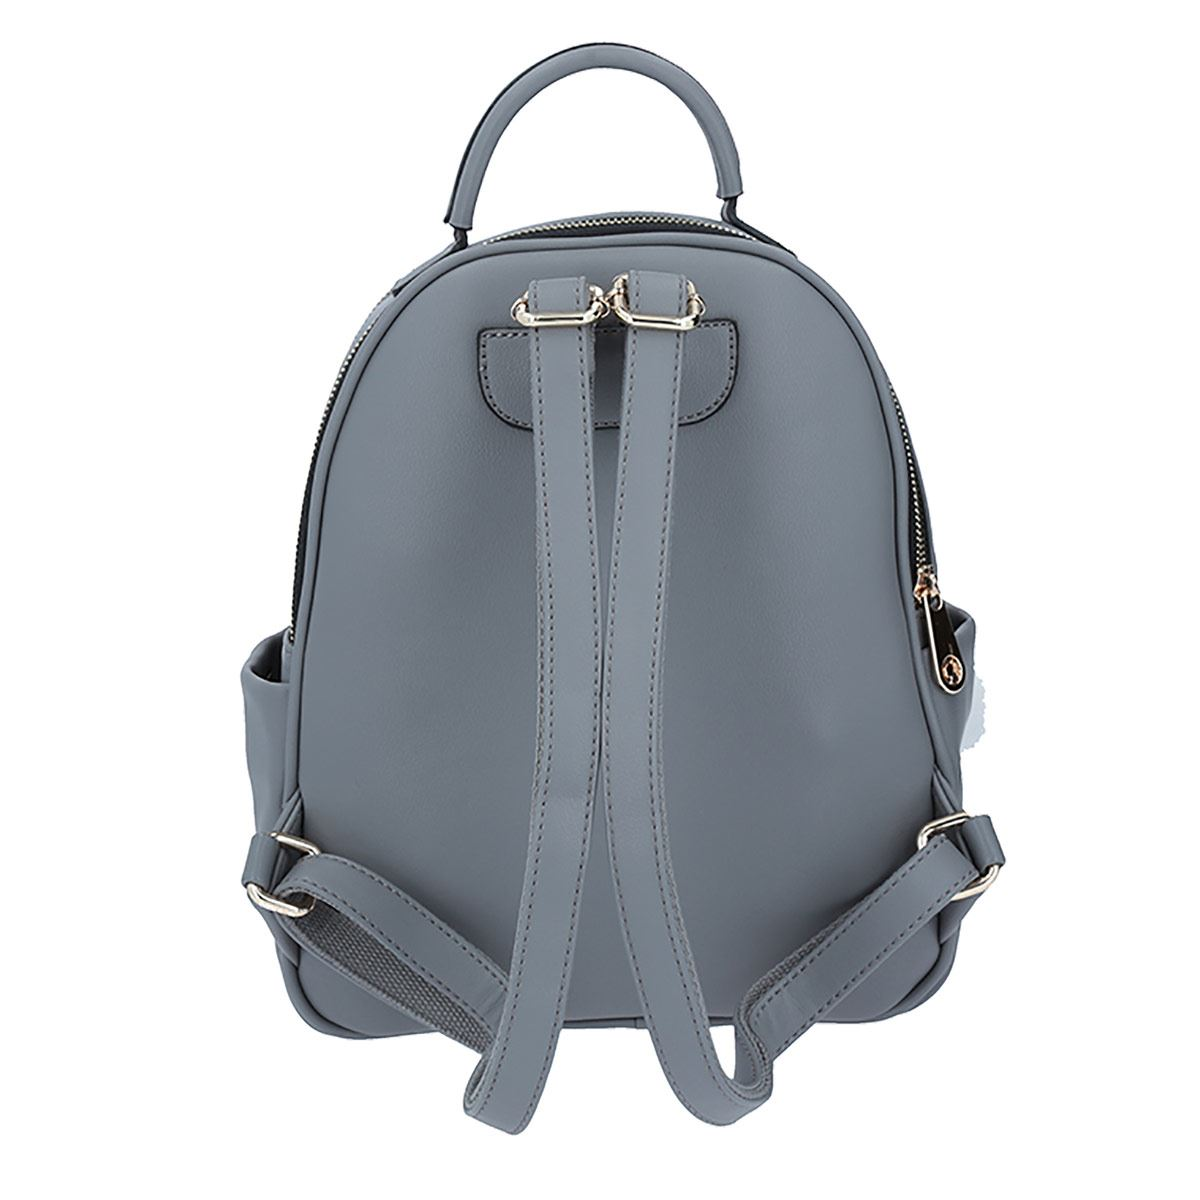 Mochila barbie gris  - Sanborns